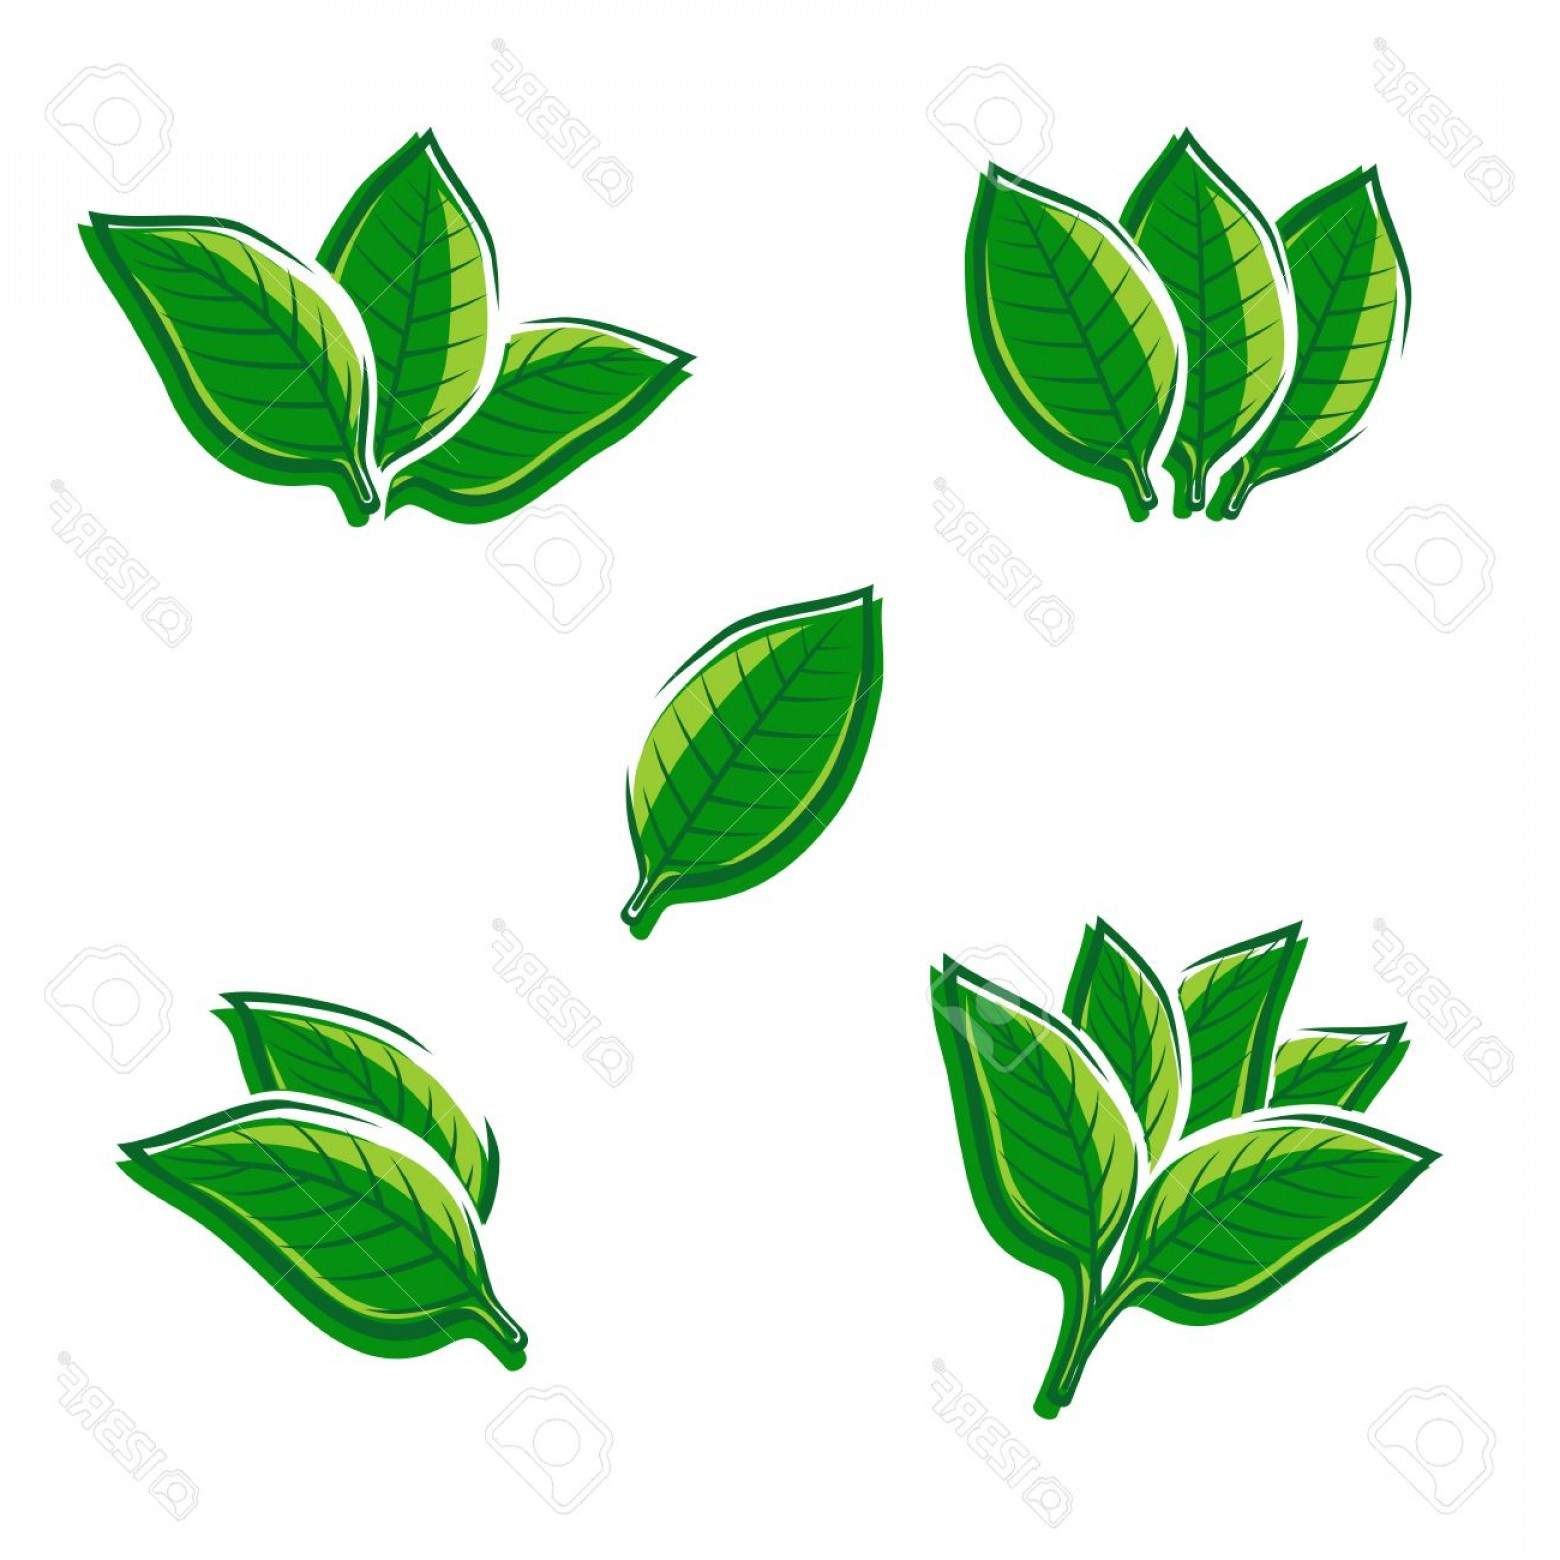 1560x1560 Photostock Vector Tobacco Leaf Set Vector Illustration Geekchicpro